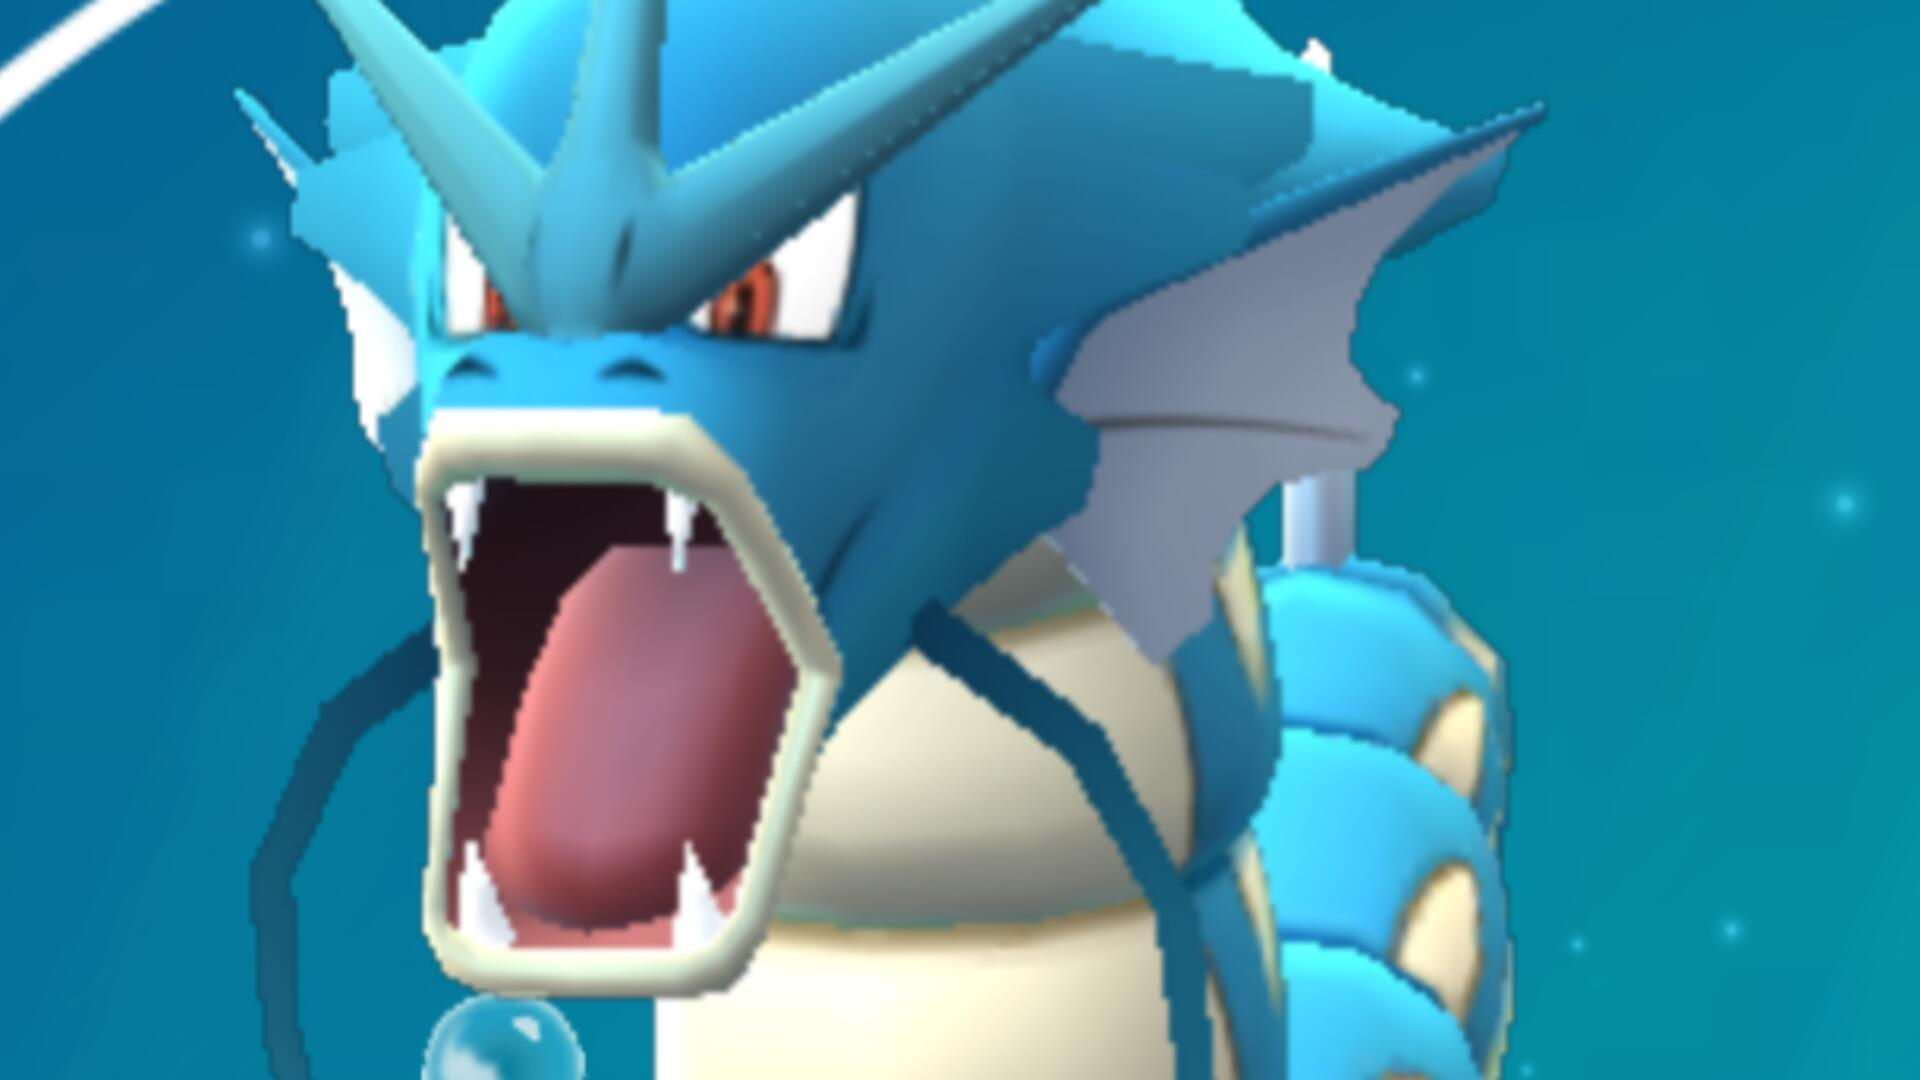 Pokemon Go May Be Getting New Shinies According to a Huge New Datamine